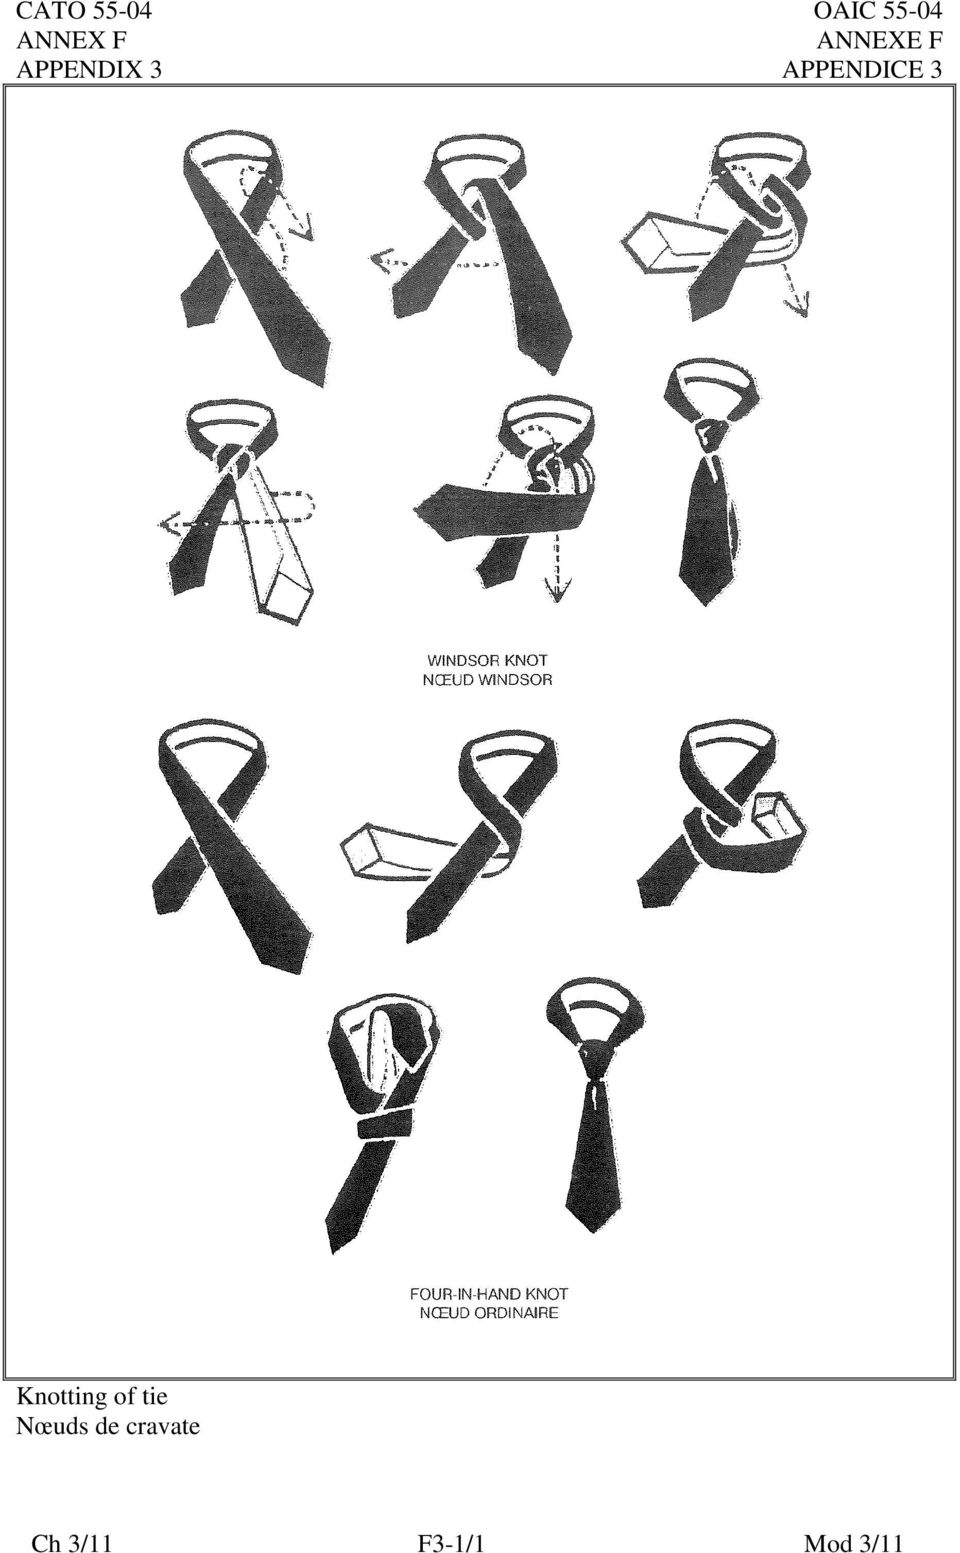 Knotting of tie